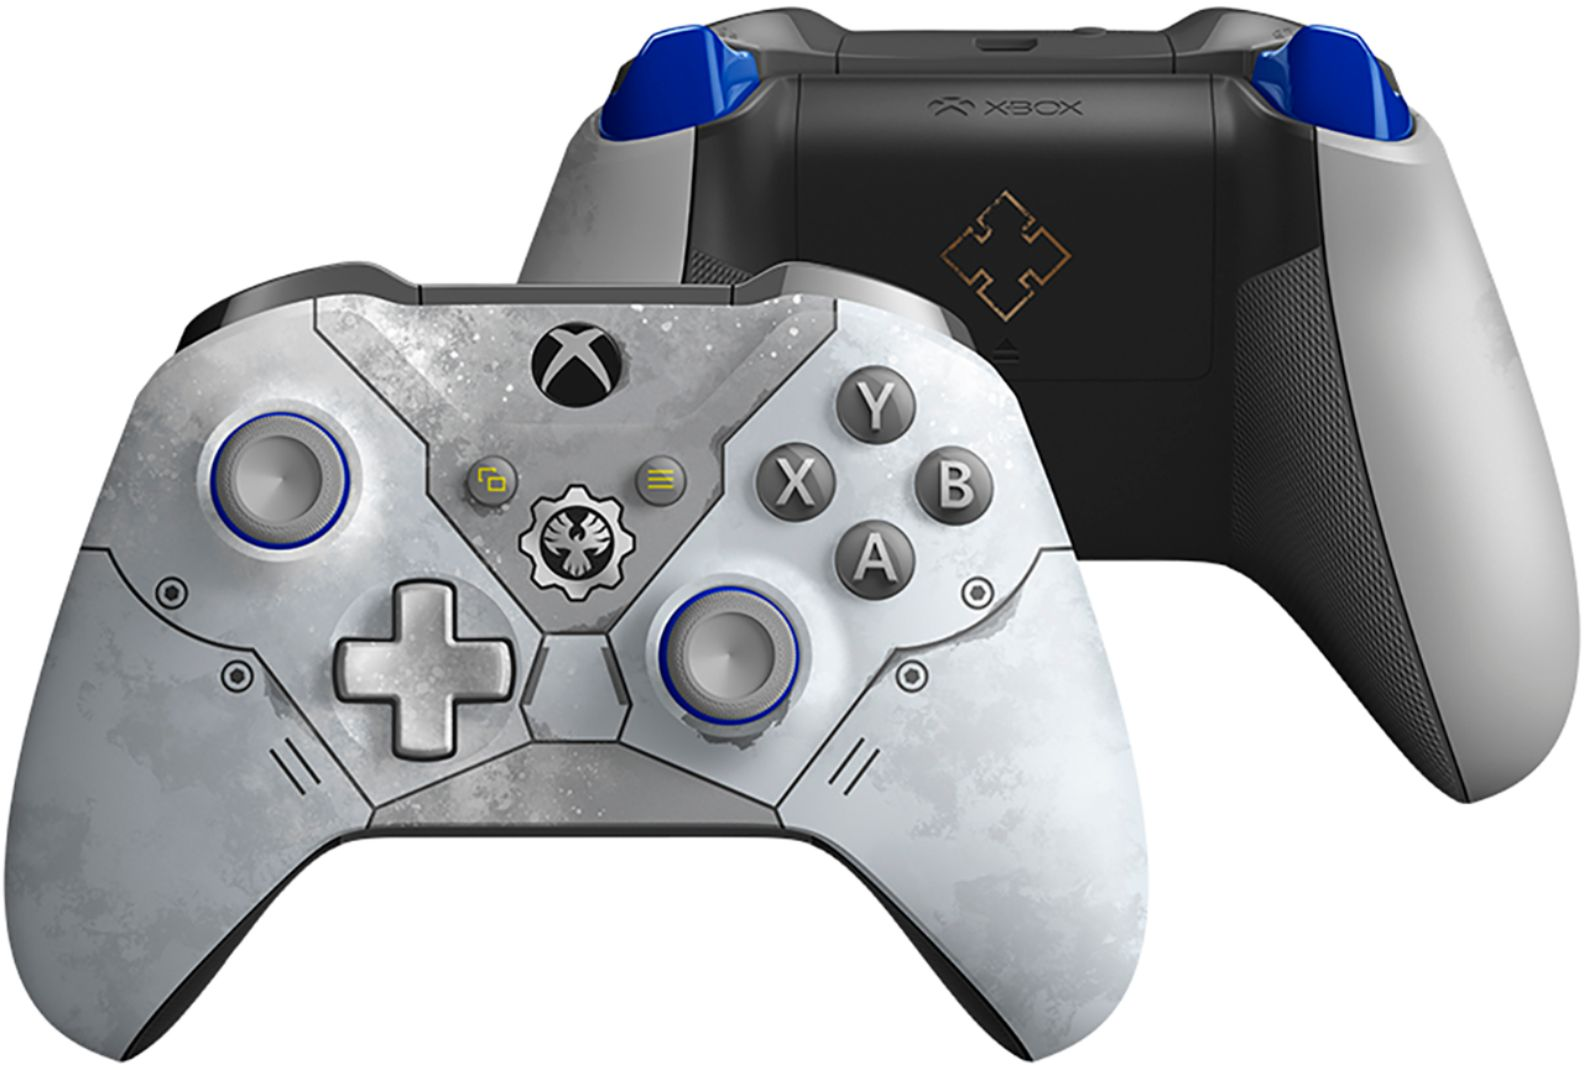 The Gears 5 Kait Diaz controller in question.